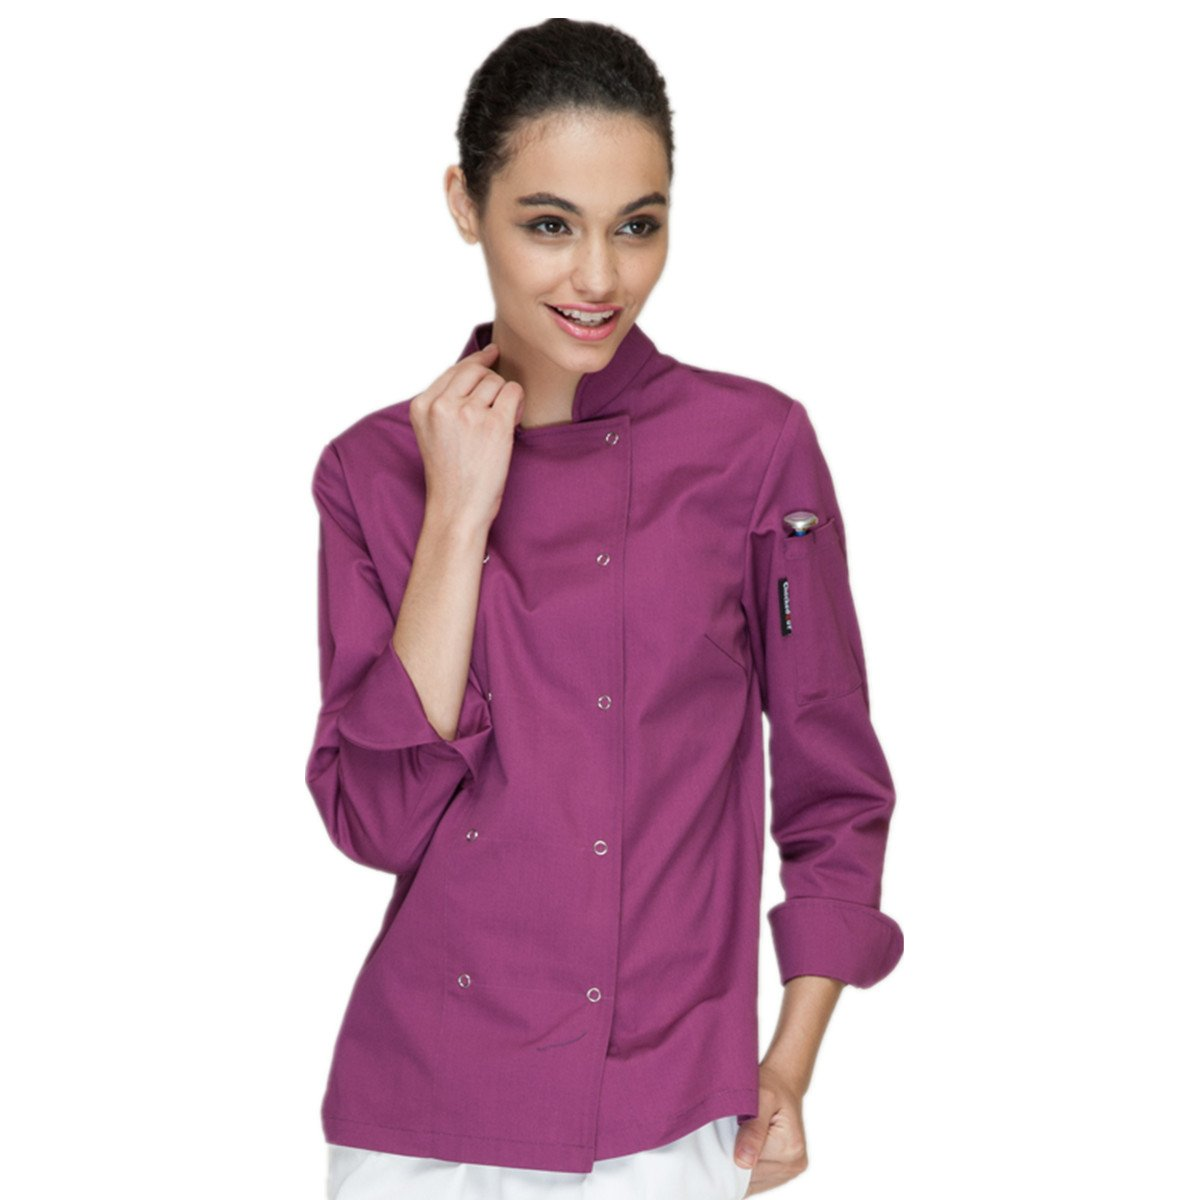 XINFU Fashion Chef's Women's Long Sleeve Kitchen Clothes Western Restaurant Chef Coat